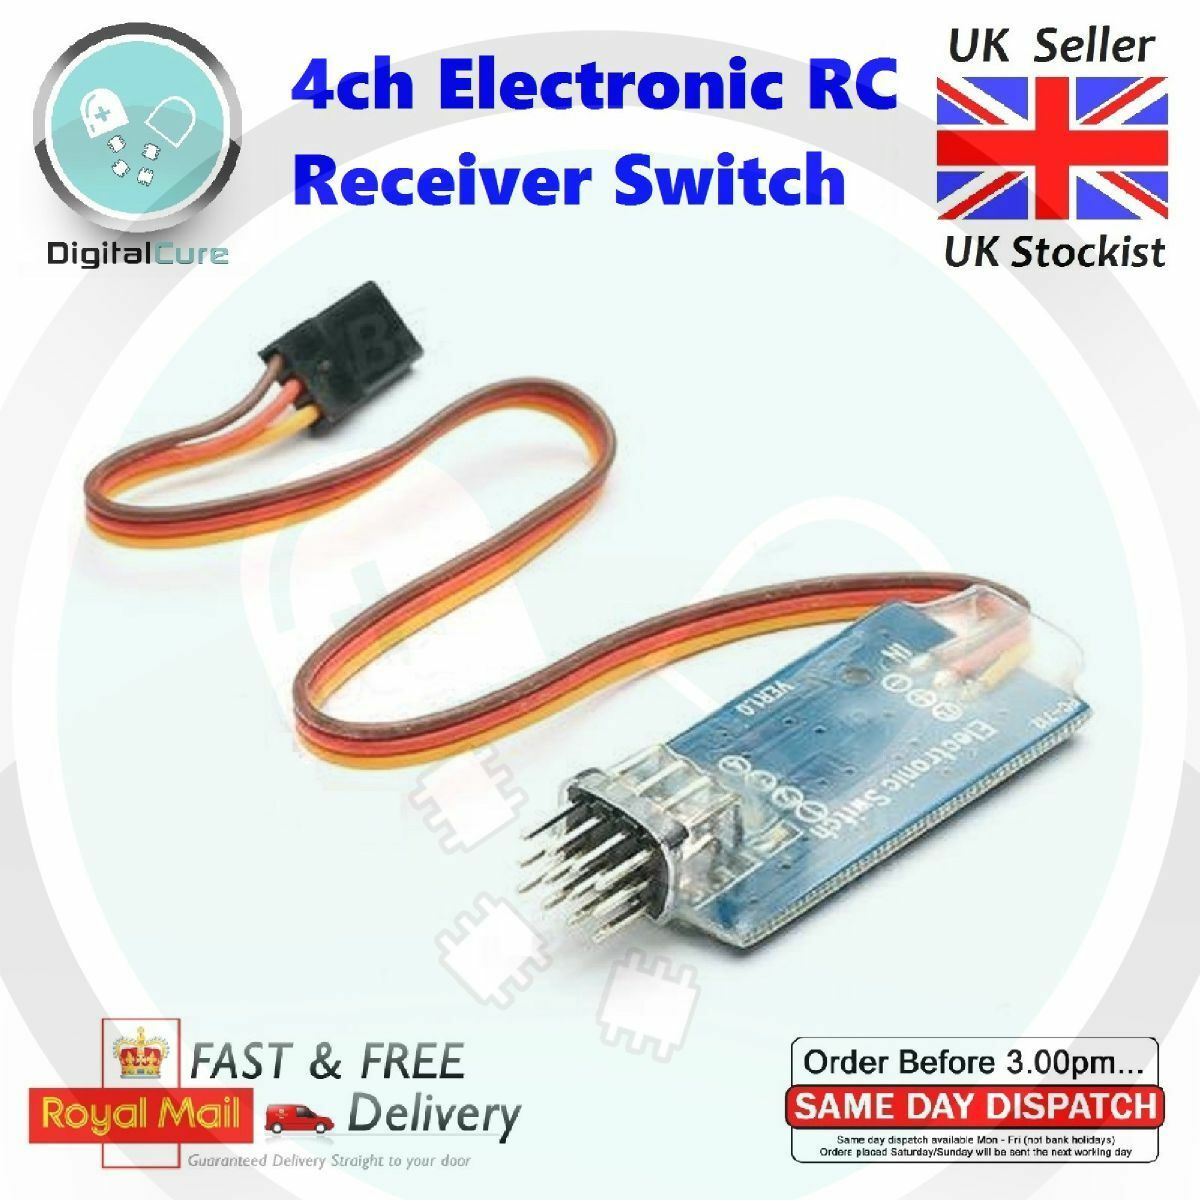 4ch Electronic On Off RC Receiver Controlled Remote Switch - Rx Tx